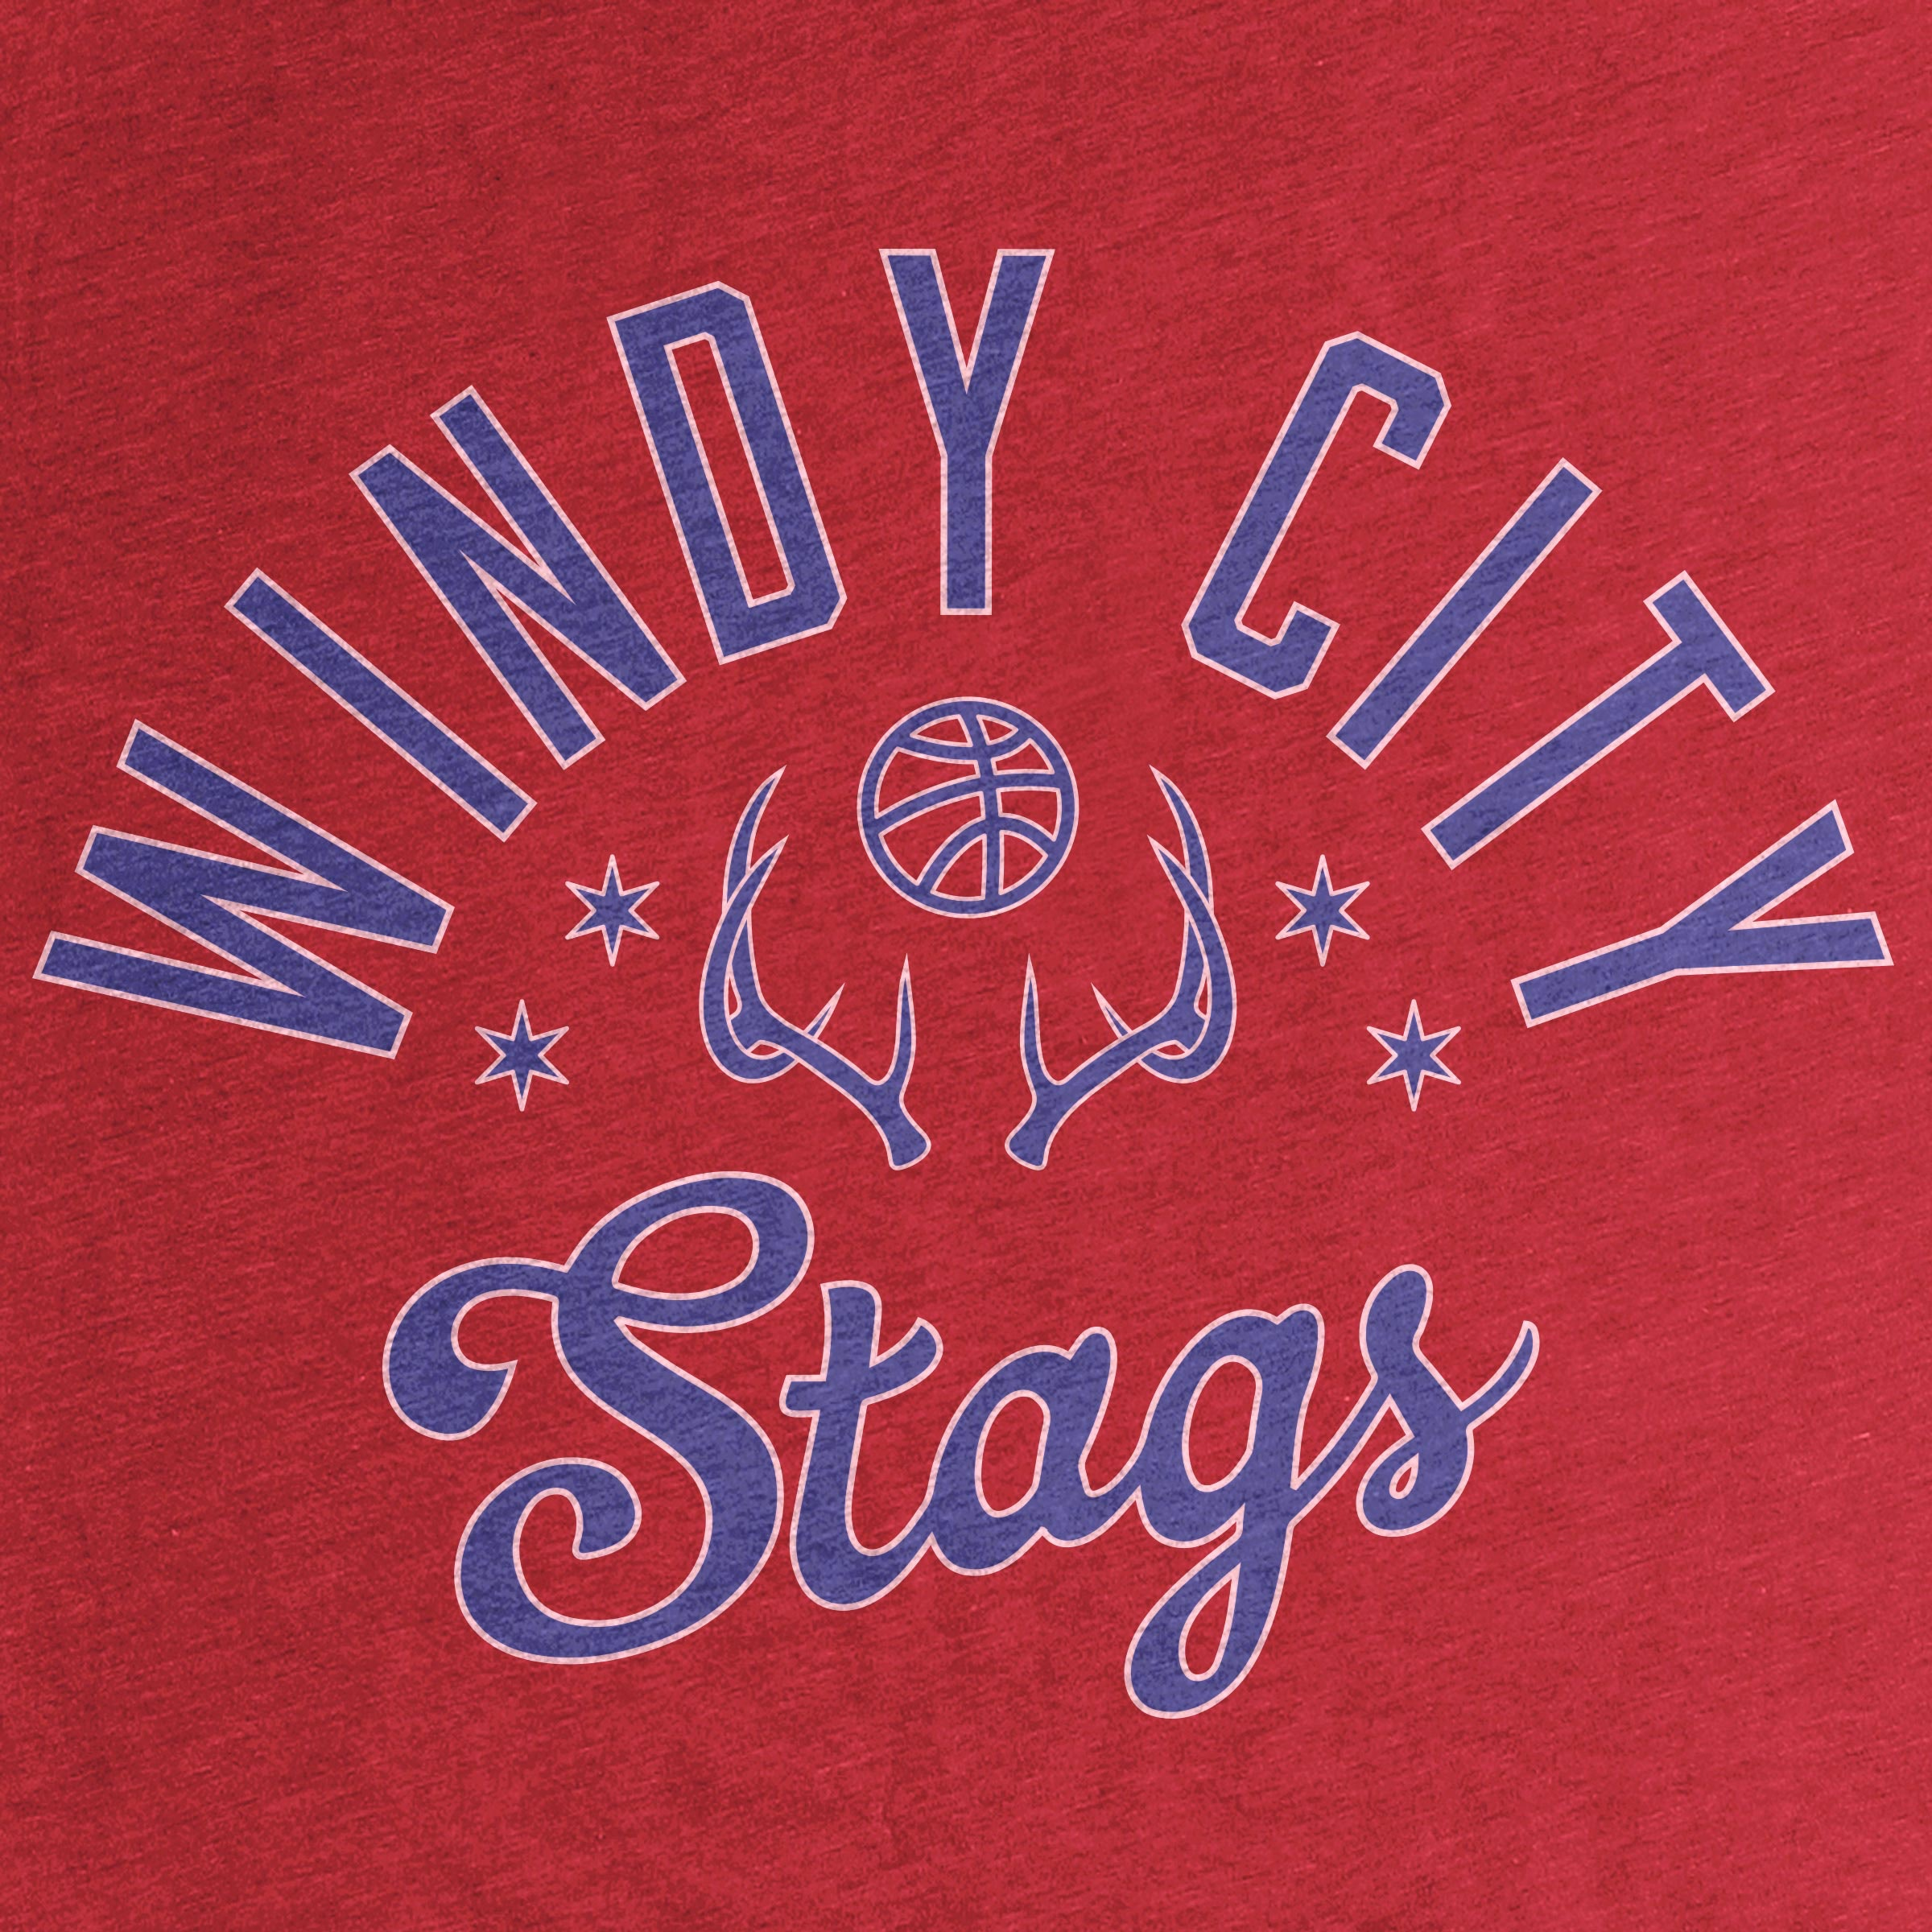 Windy City Stags